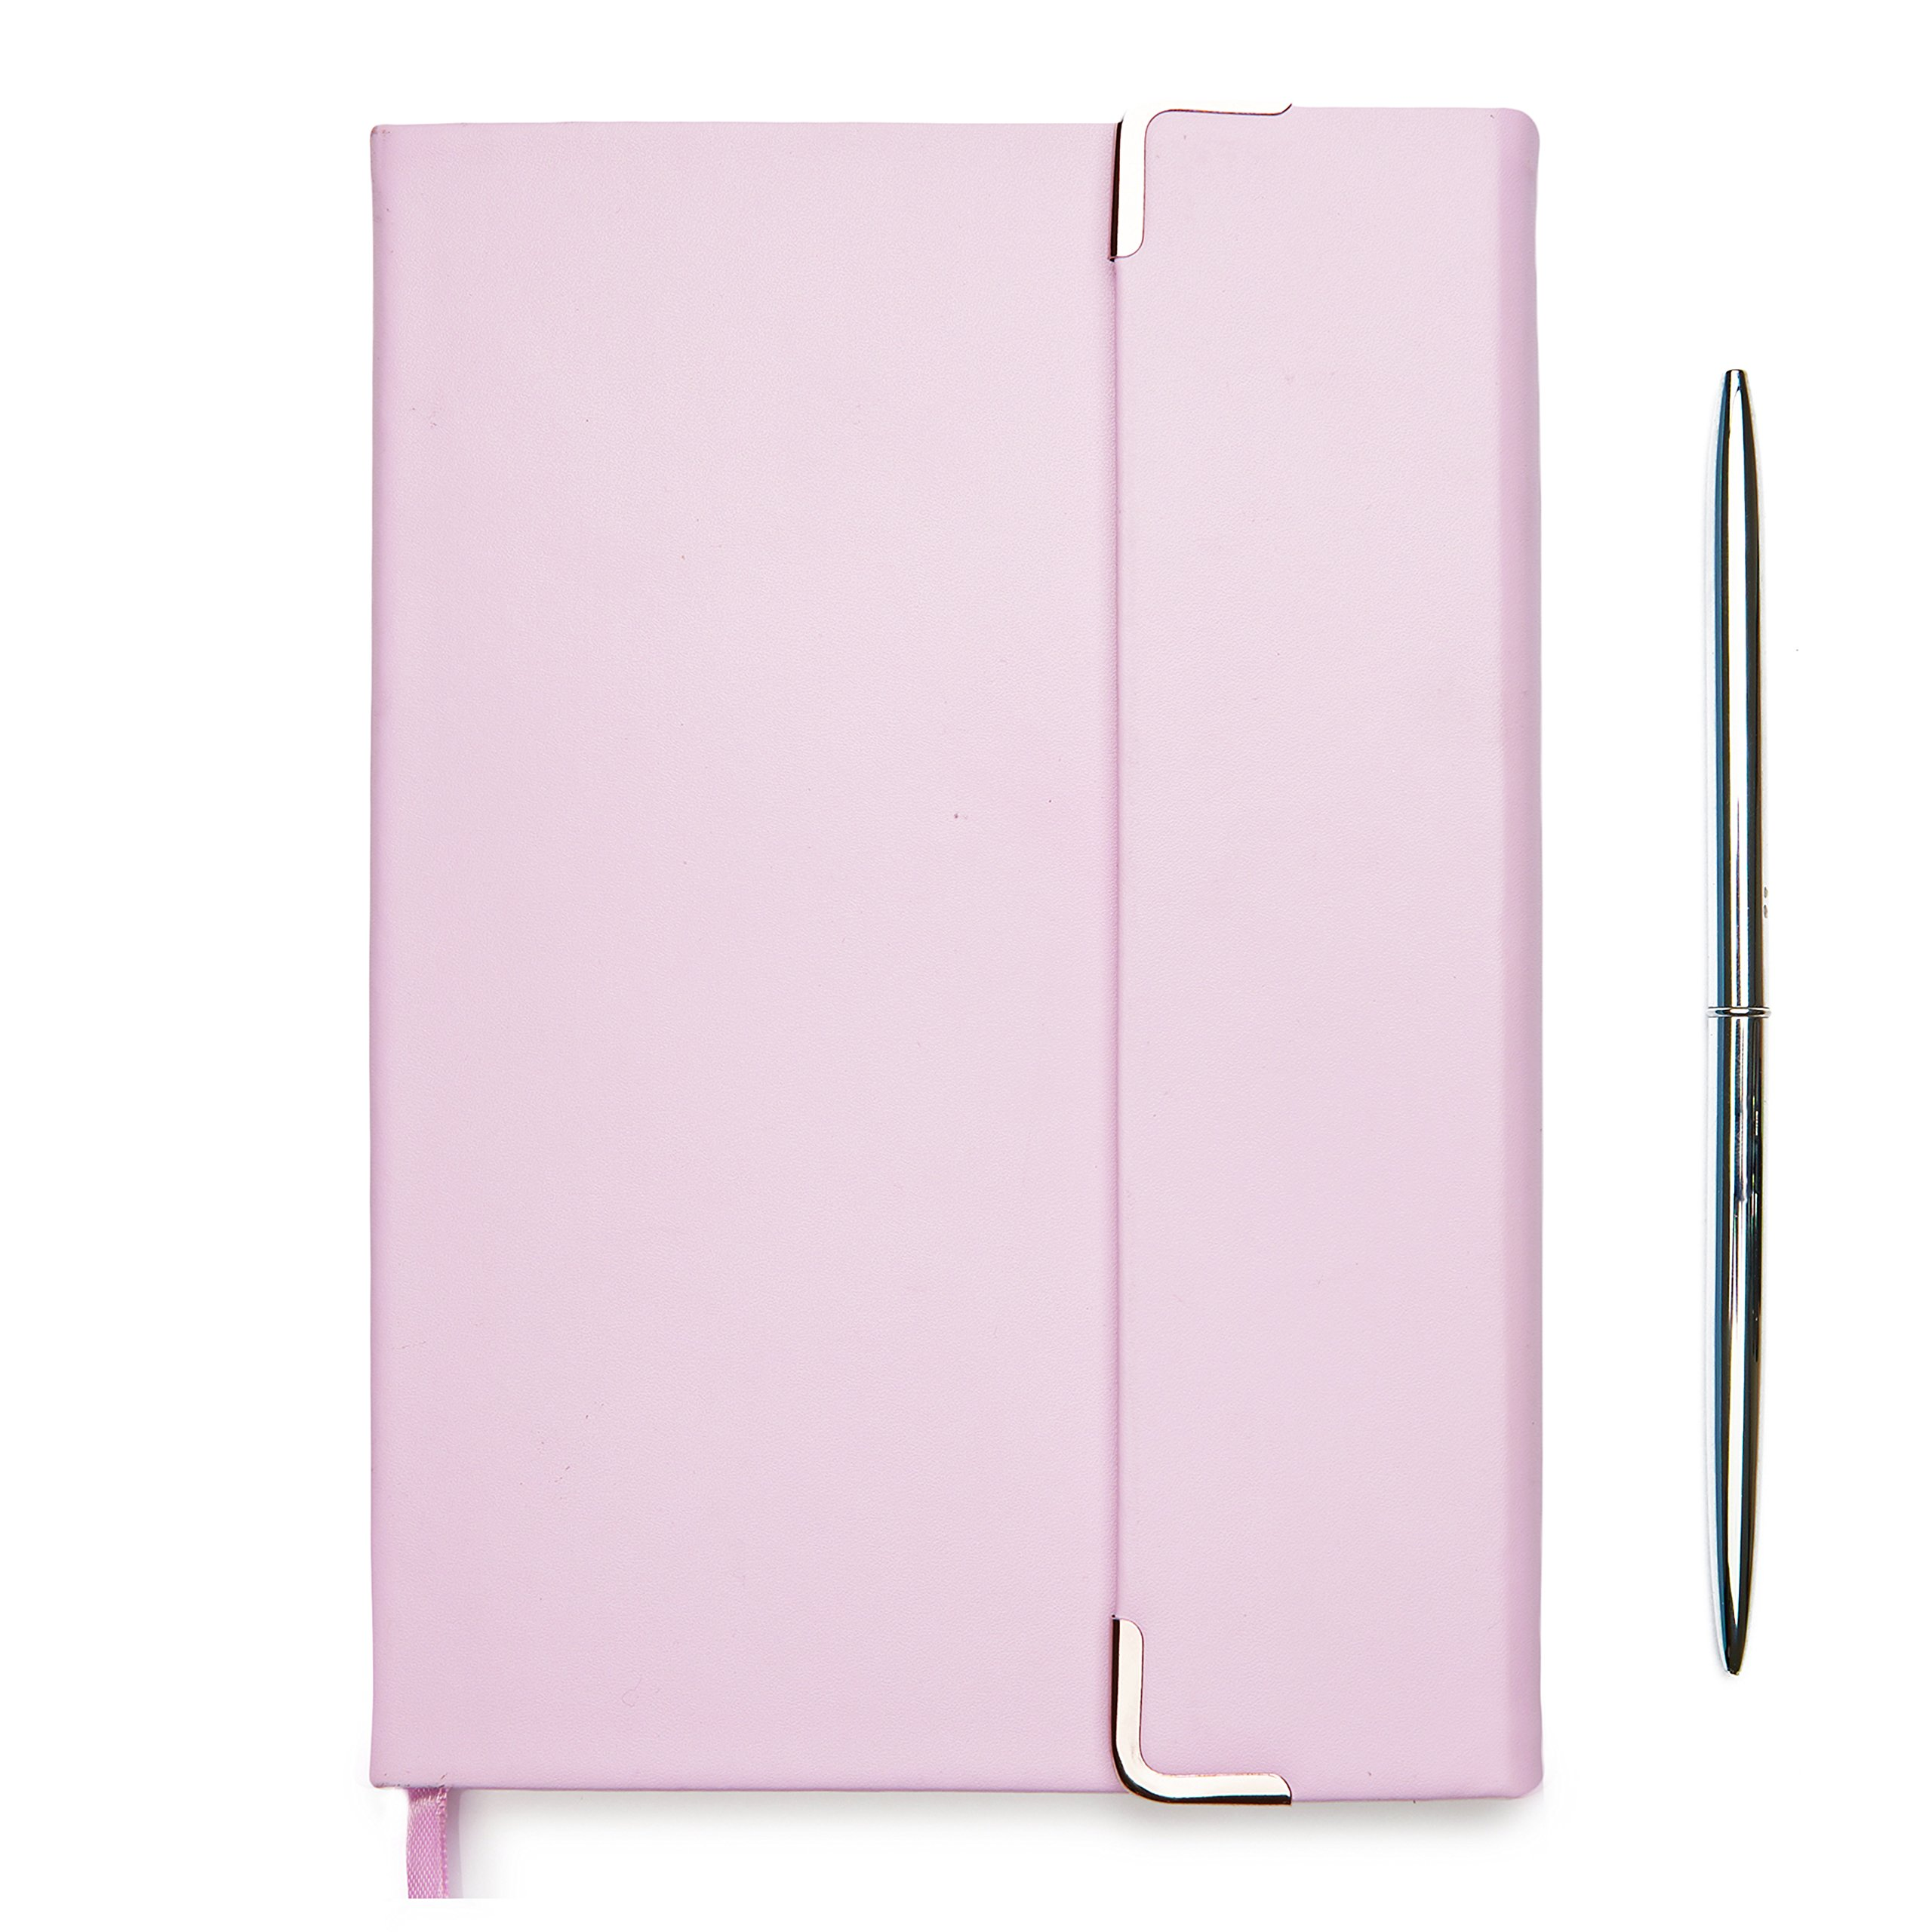 Minte inspirational journal   dotted journal to write in for women   pen and writing journal gift set   perfect for bullet journaling   A5(8,3x5,7 in) hardcover notebook, 250 pages, lavender